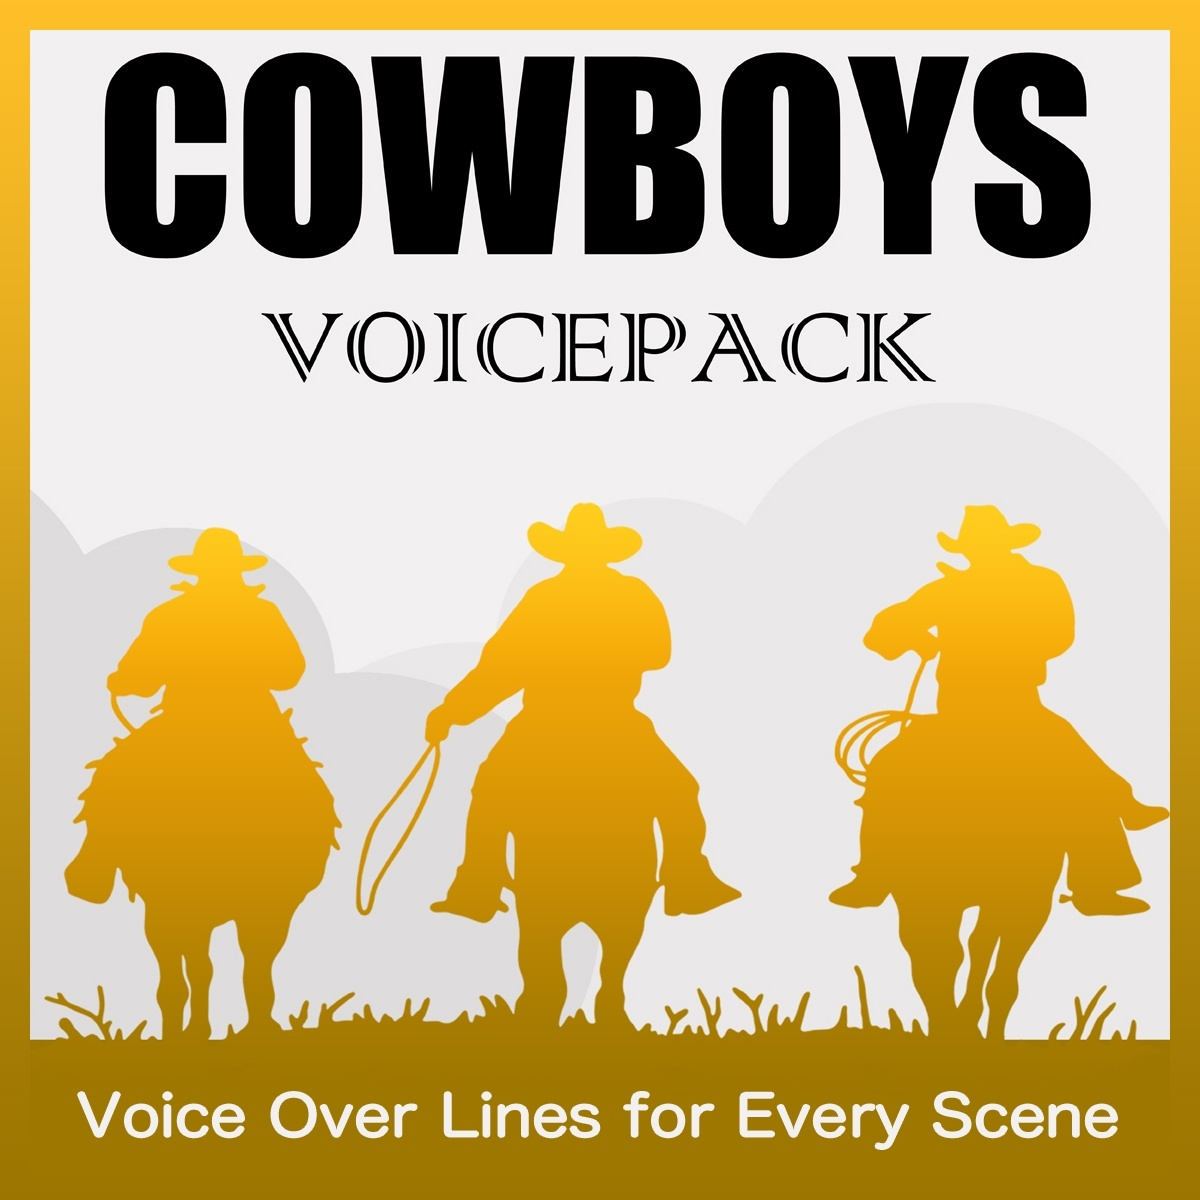 COWBOY VOICES - Royalty-Free Voice SFX Download